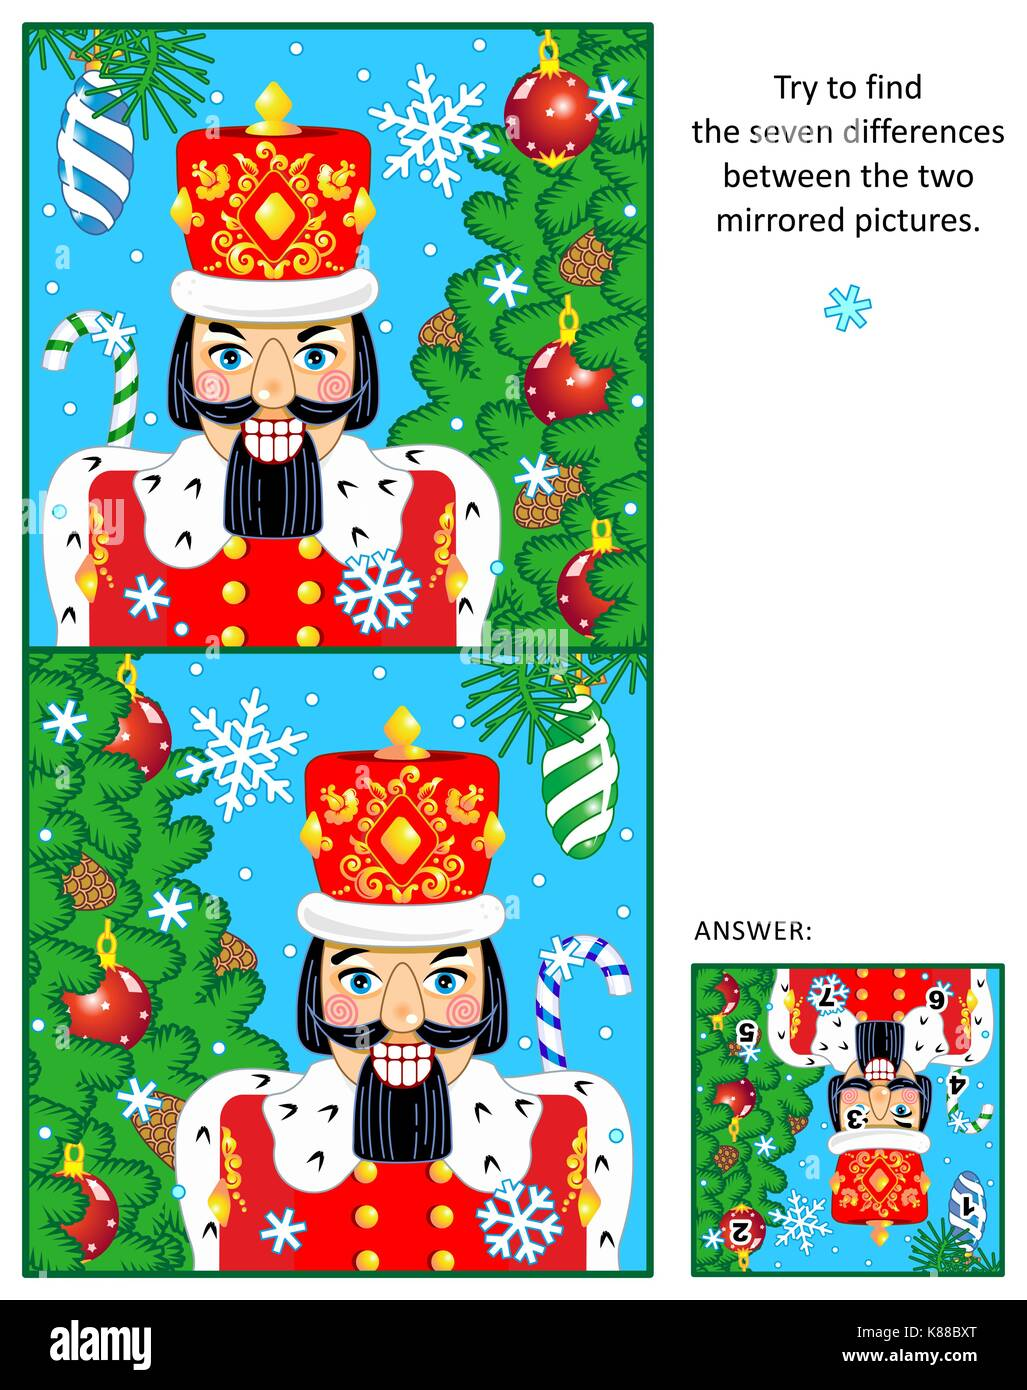 New Year or Christmas visual puzzle: Find the seven differences between the two mirrored pictures of nutcracker, - Stock Image